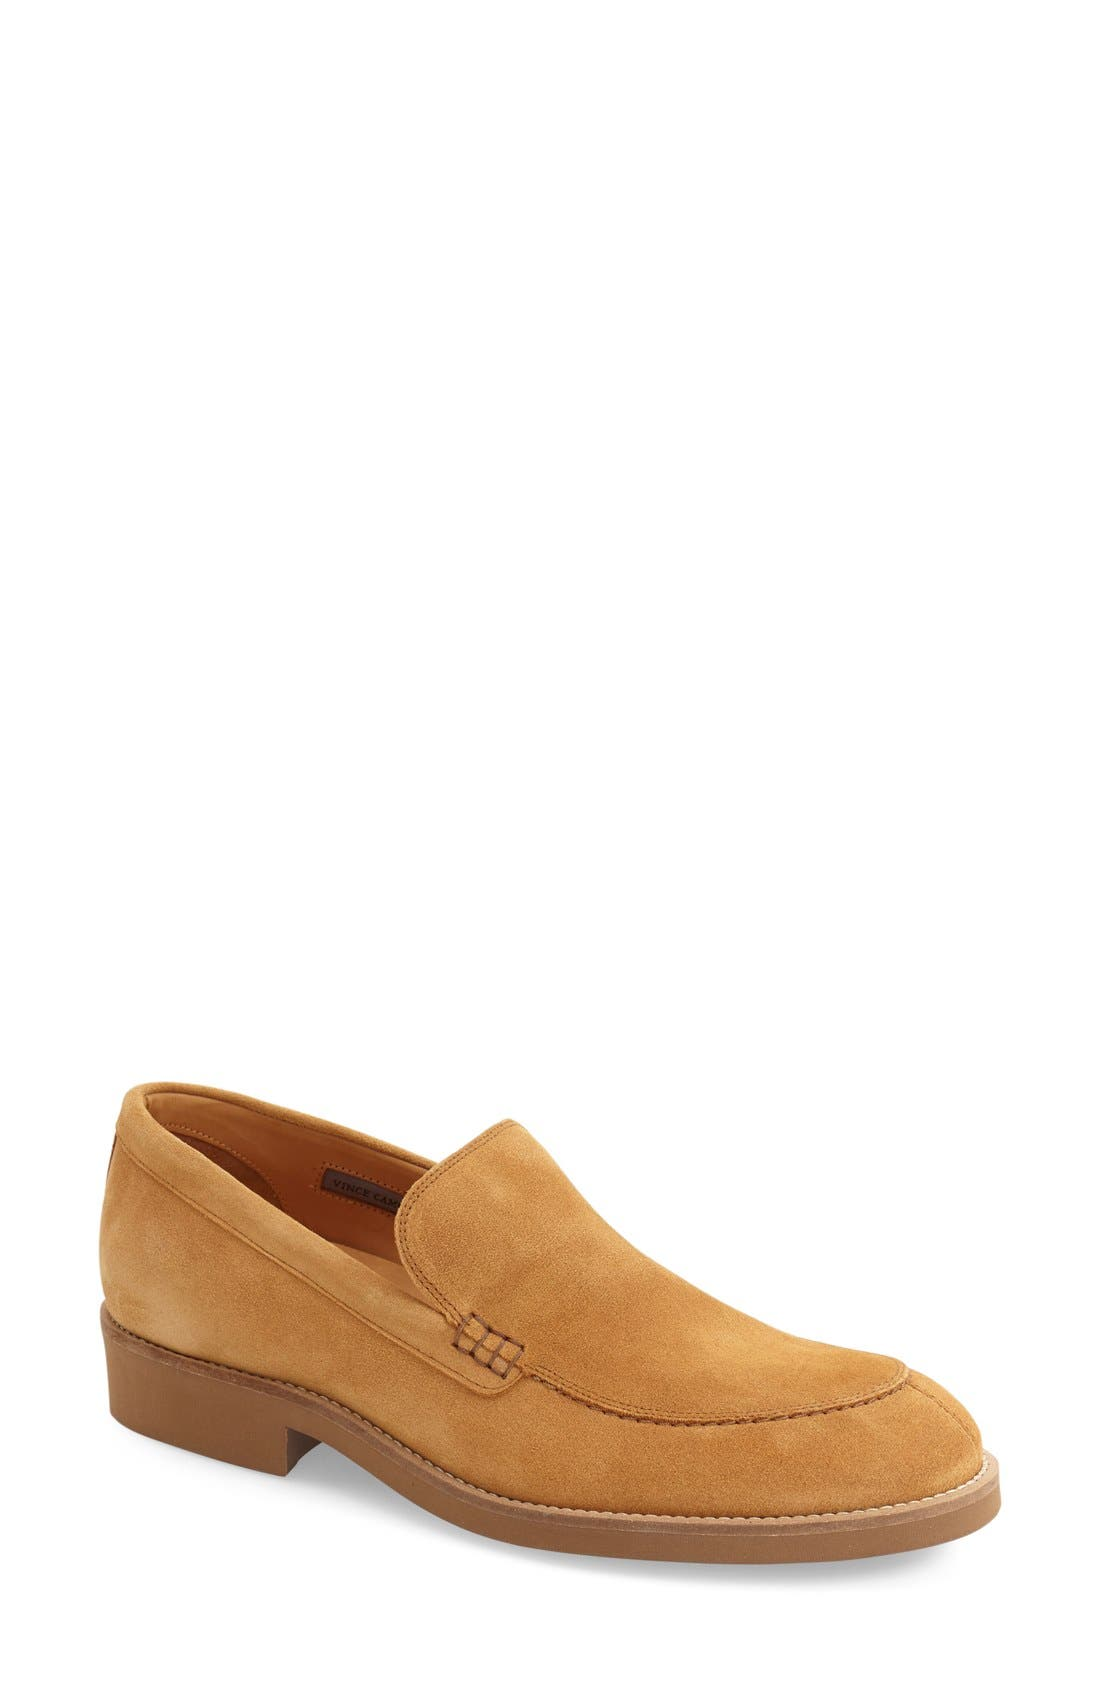 'Arleigh' Loafer,                         Main,                         color, Lion